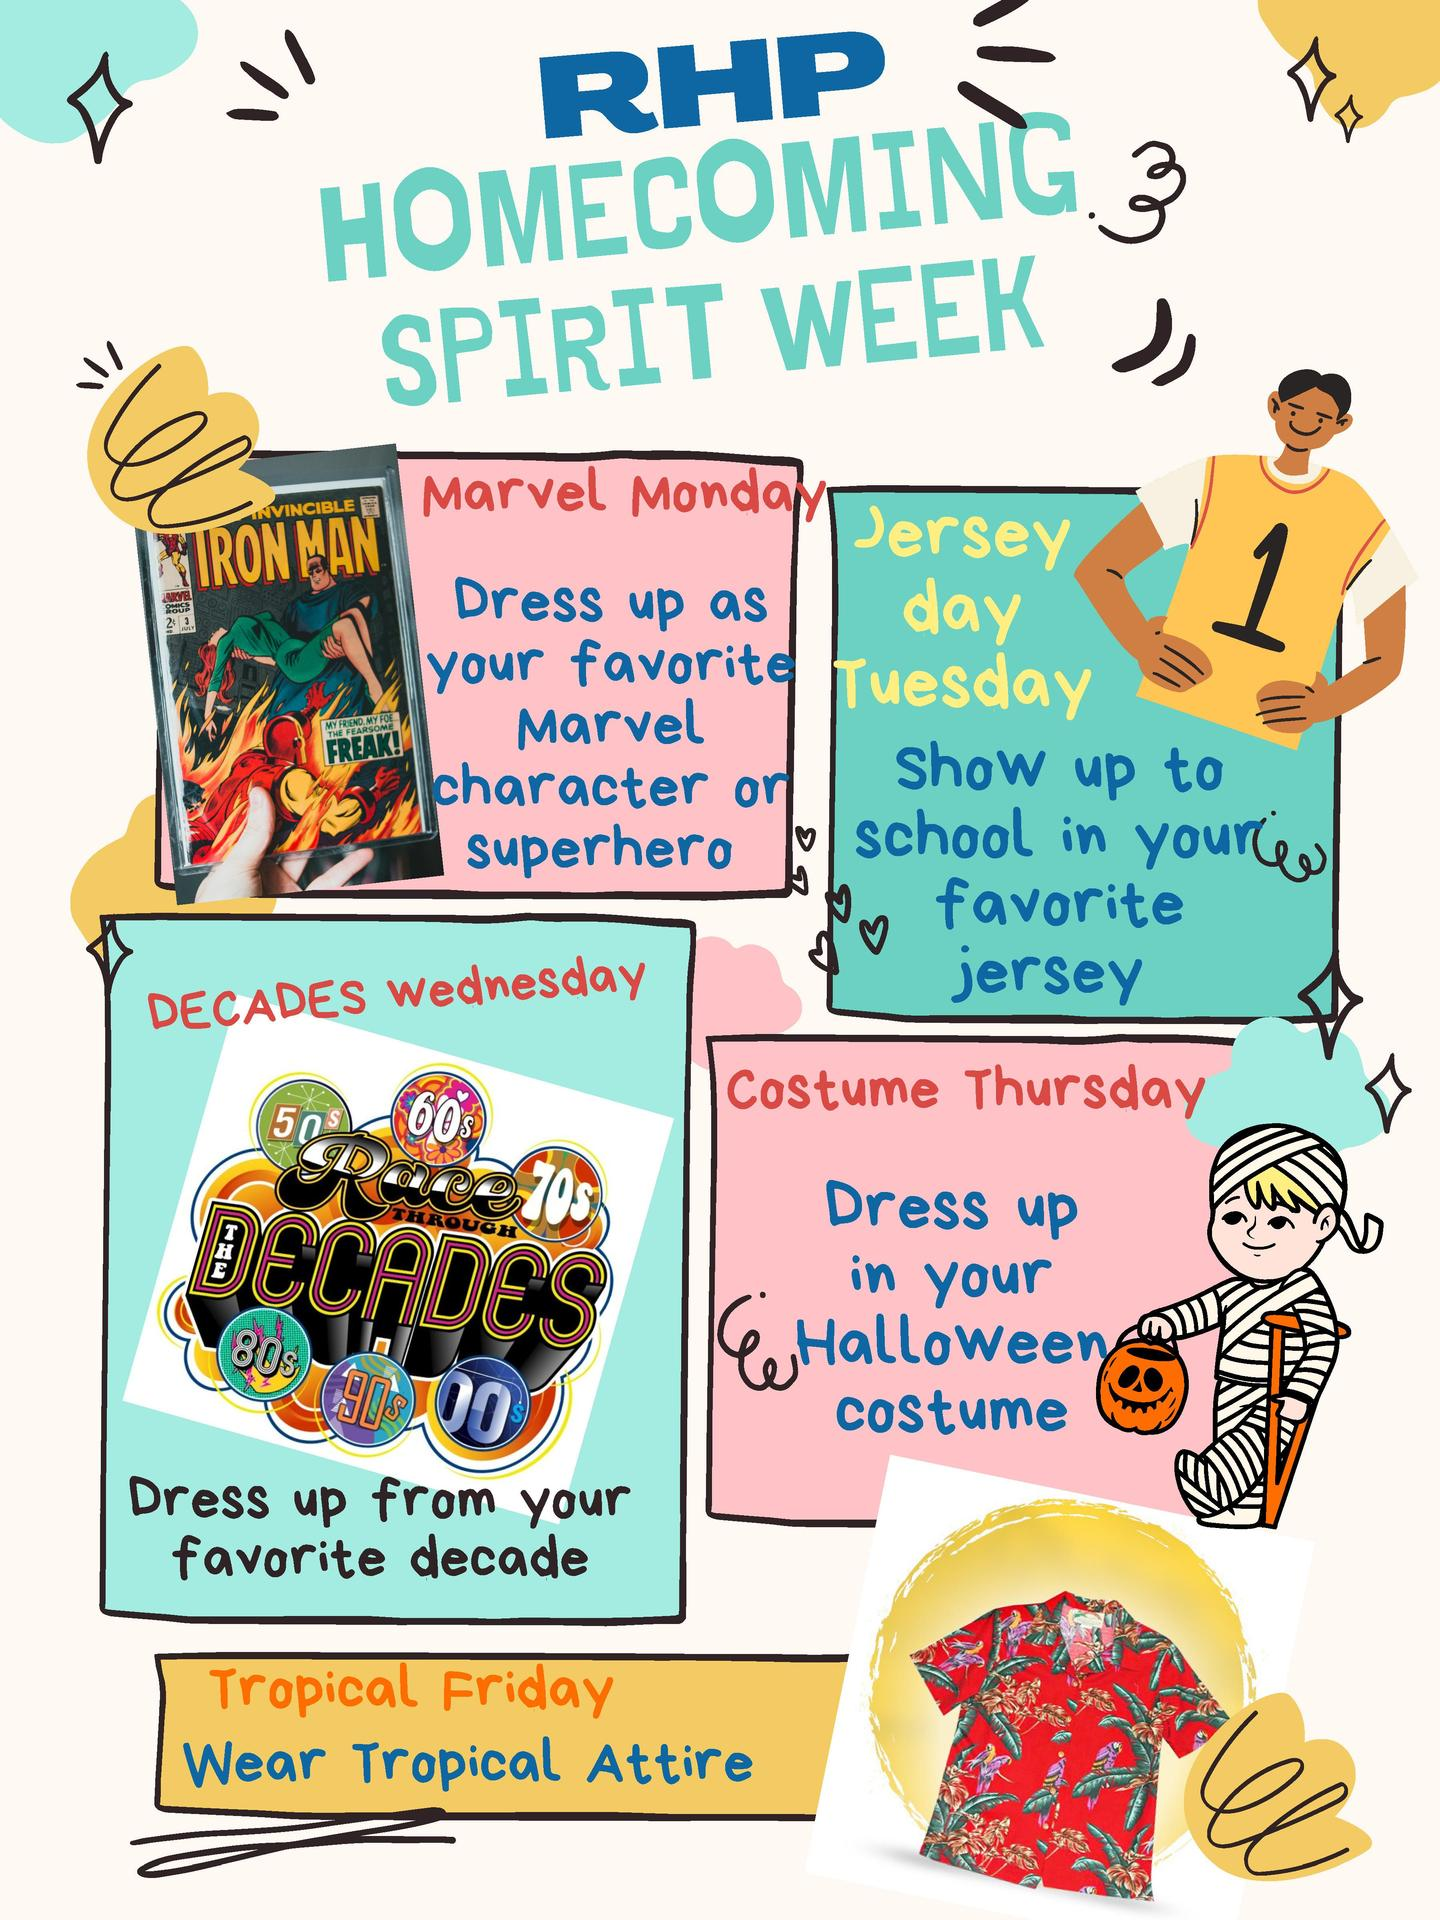 Spirit Week Poster - Marvel Monday: Dress Like a Superhero -  Jersey Tuesday - Show up in your favorite team jersey - Decades Wednesday: Dress up from your favorite decade - Costume Thursday: Dress up in your Halloween Costume - Tropical Friday: Wear tropical attire